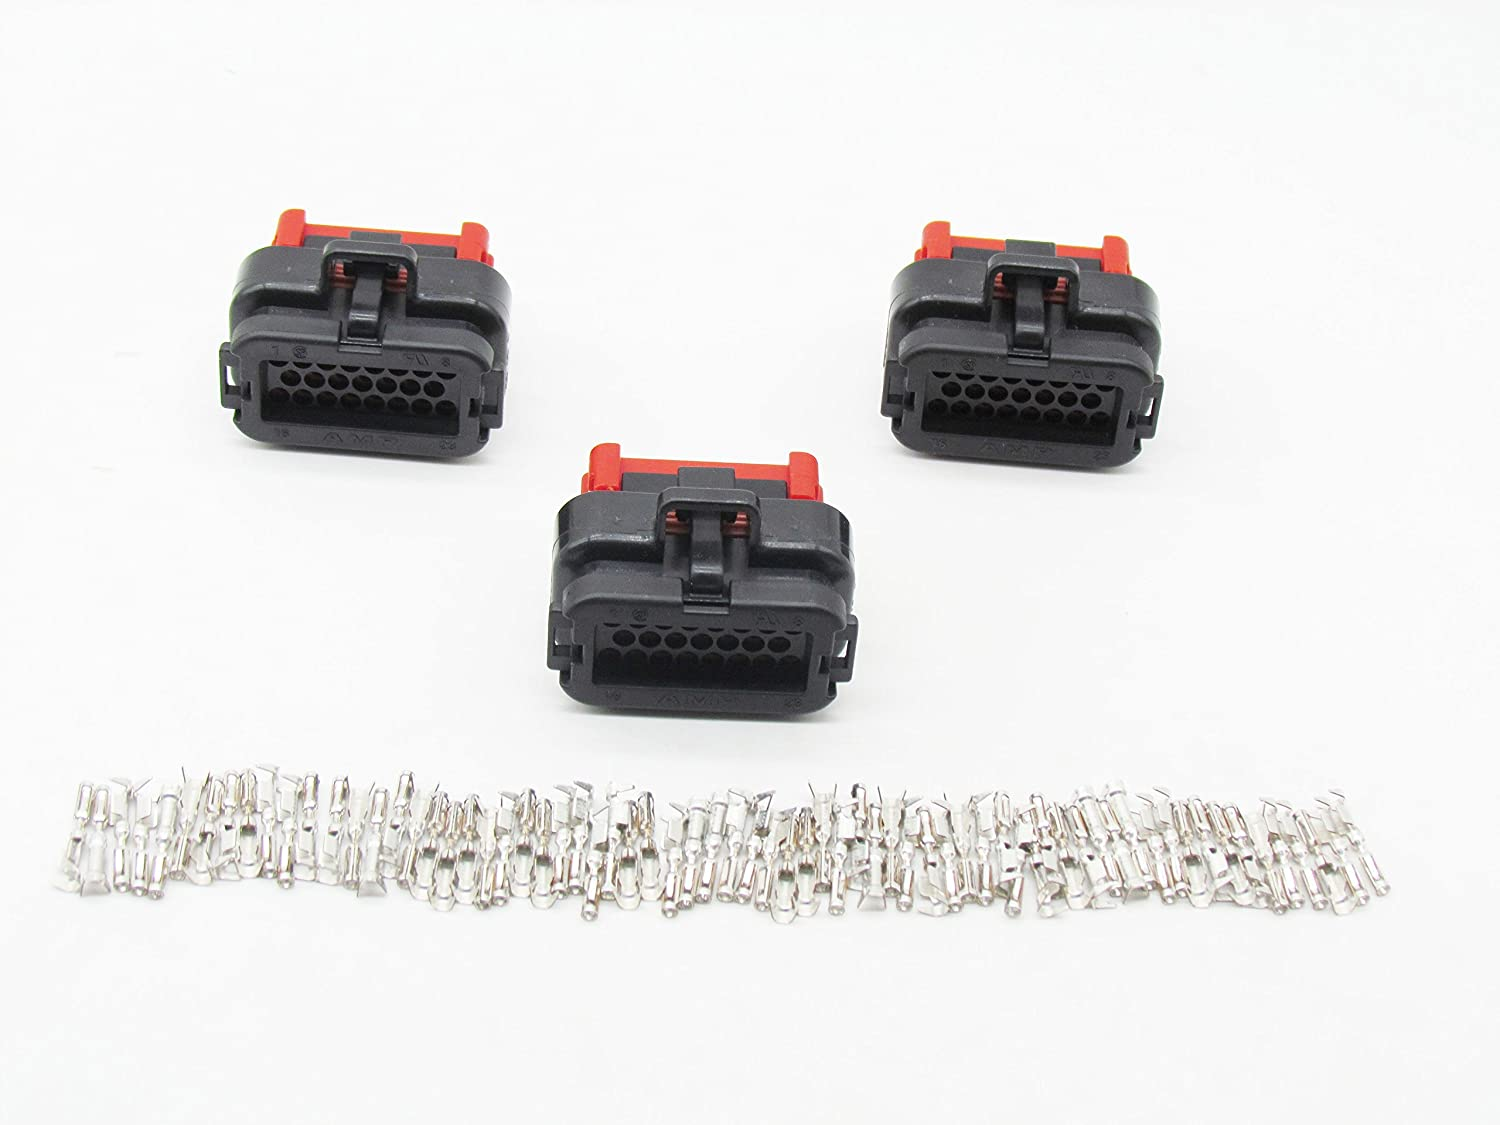 CNKF 1 Set AMP 23 pin sealed way Tyco female automotive ECU connector includes terminals 770680-1